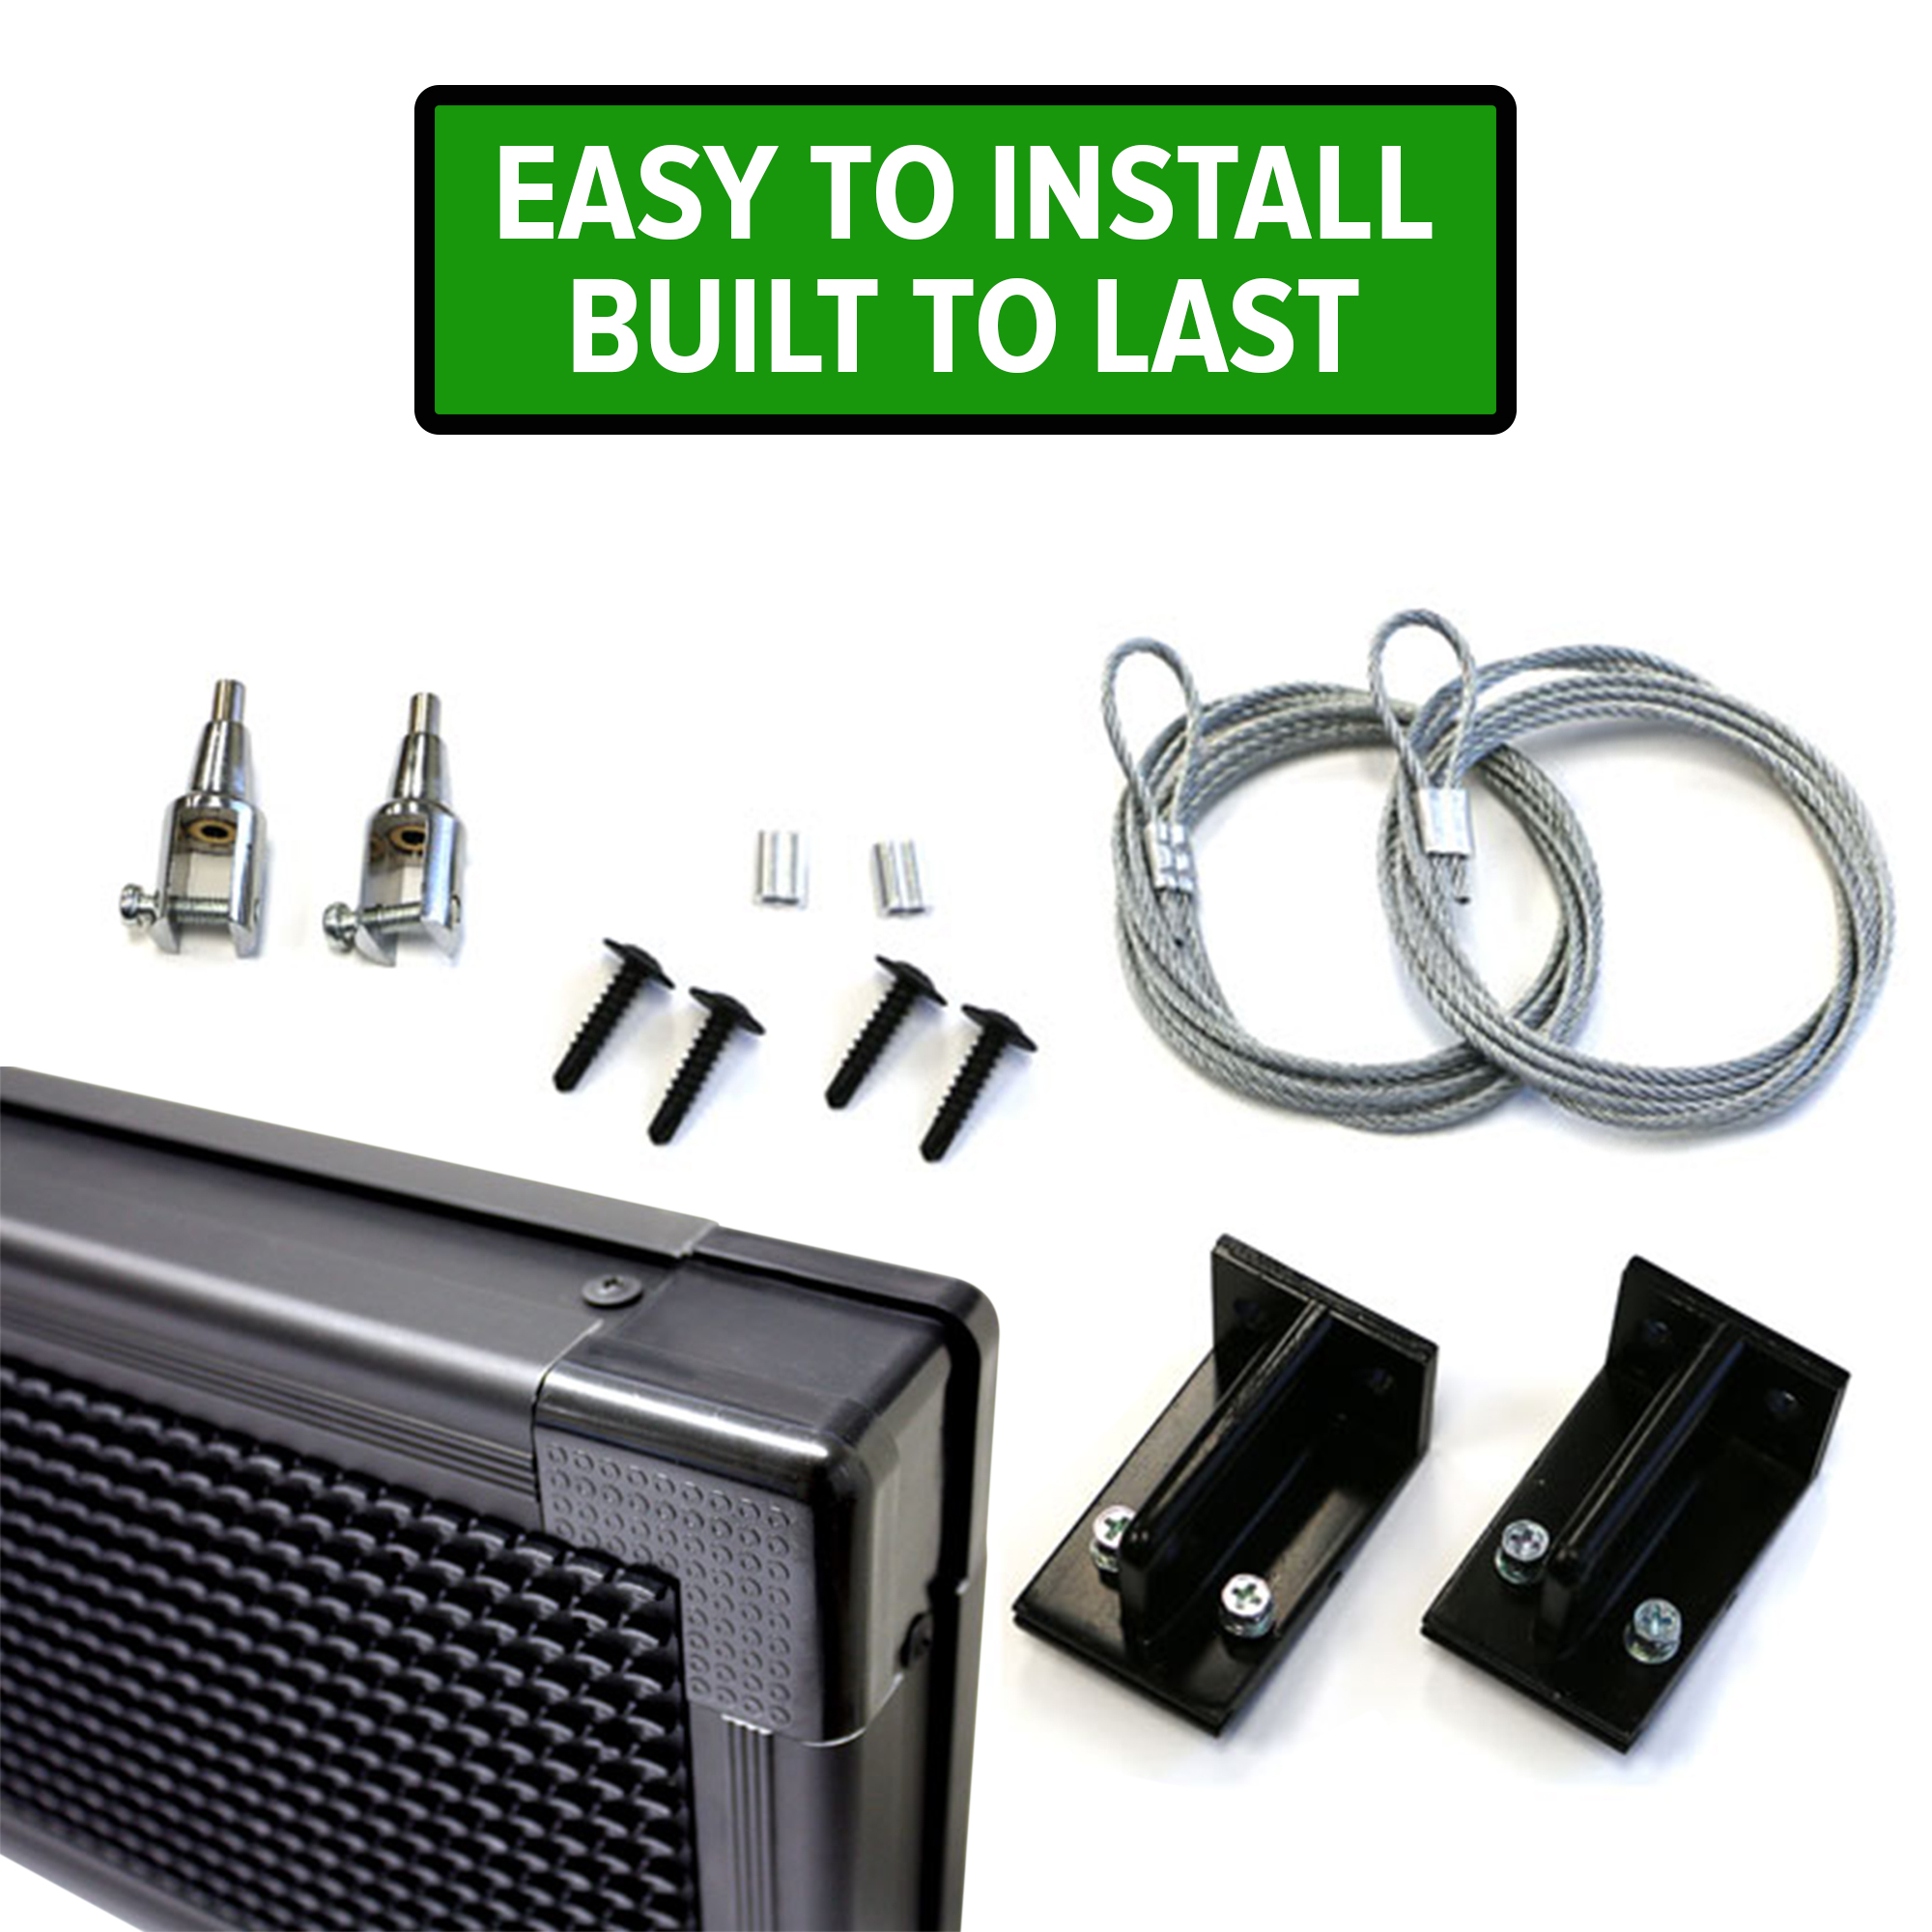 Easy-to-install-built-to-last